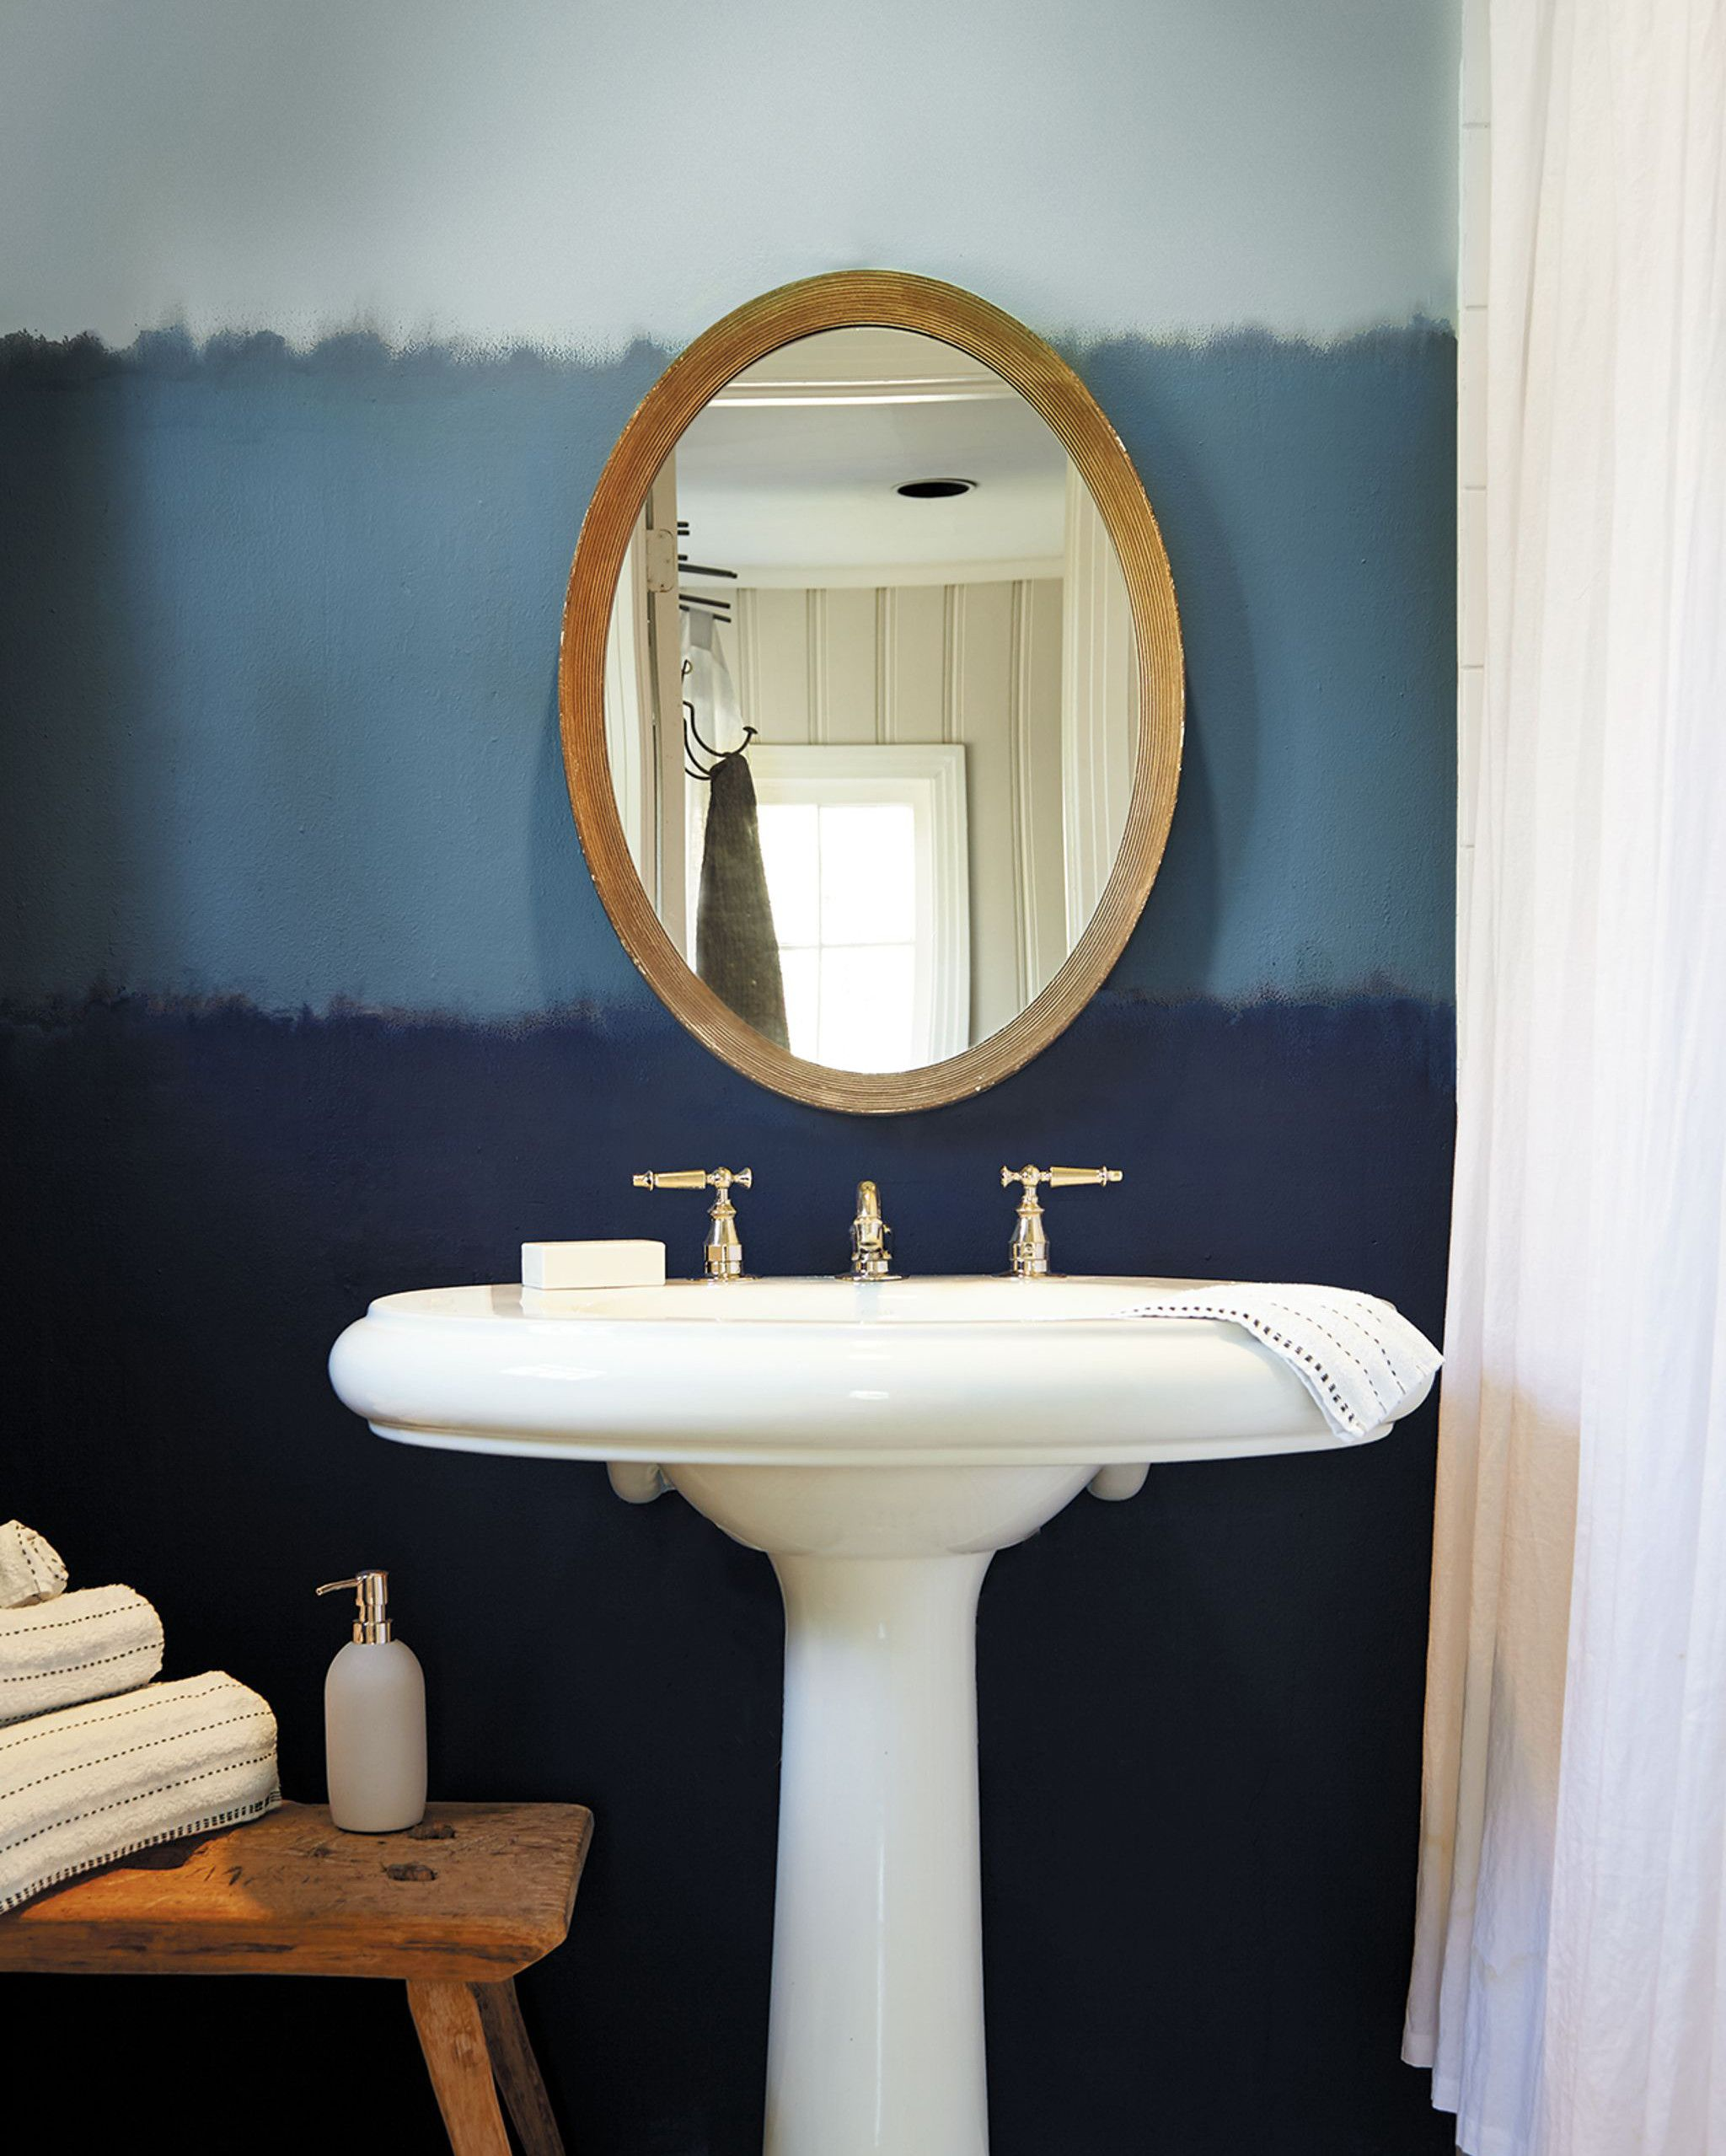 Behr S 2019 Color Of The Year Is Perfect For Just About Every Room In Your House Behr Colors Trending Paint Colors Bathroom Paint Colors